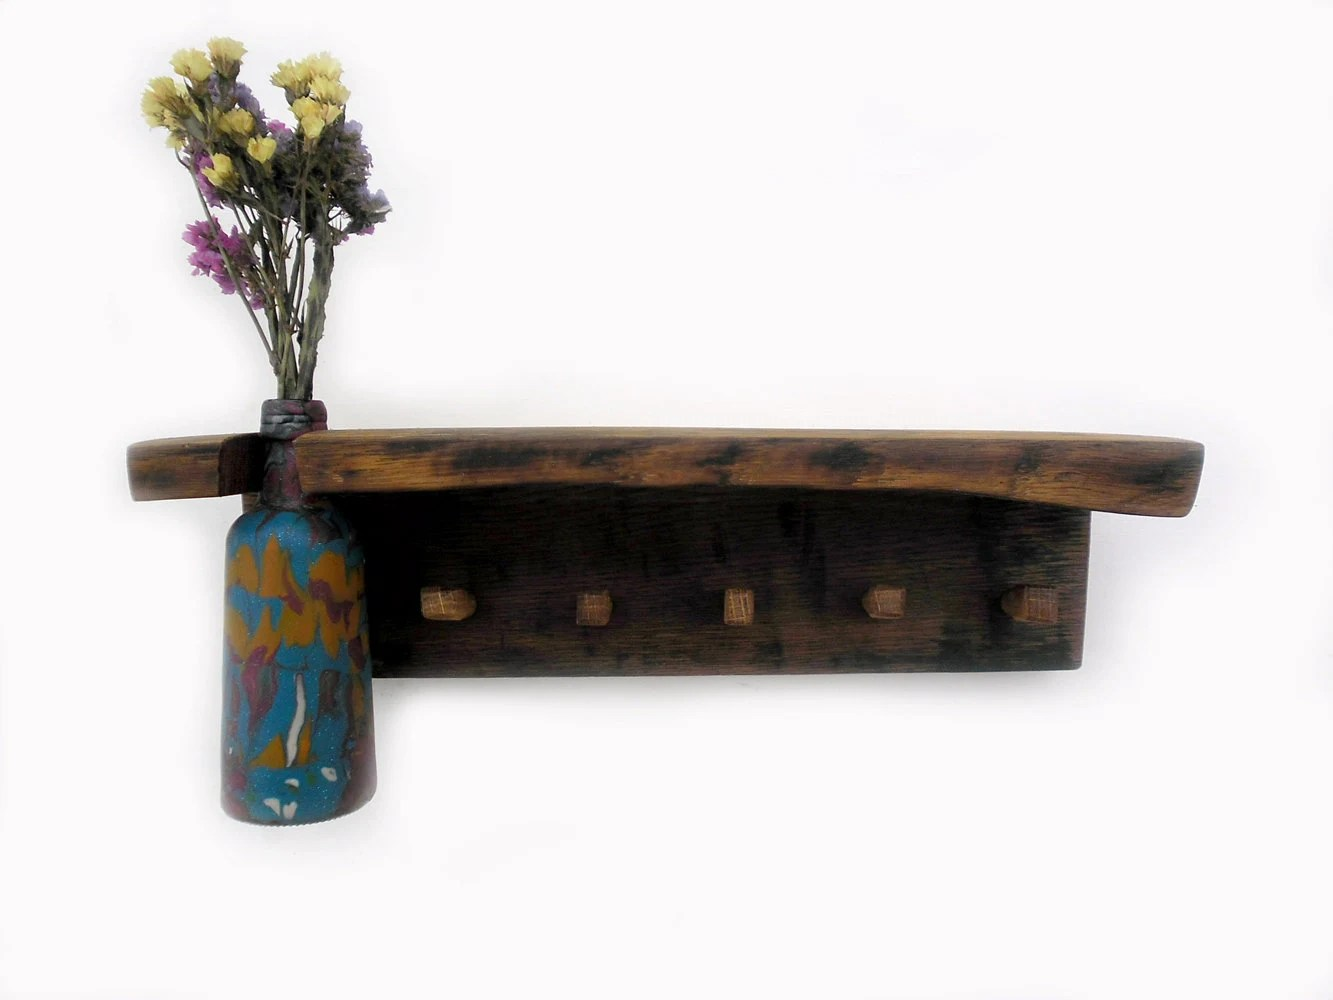 Wooden Key Holder With Shelf Wooden Key Holder With A Shelf And Vase By Thirdcloudtotheleft